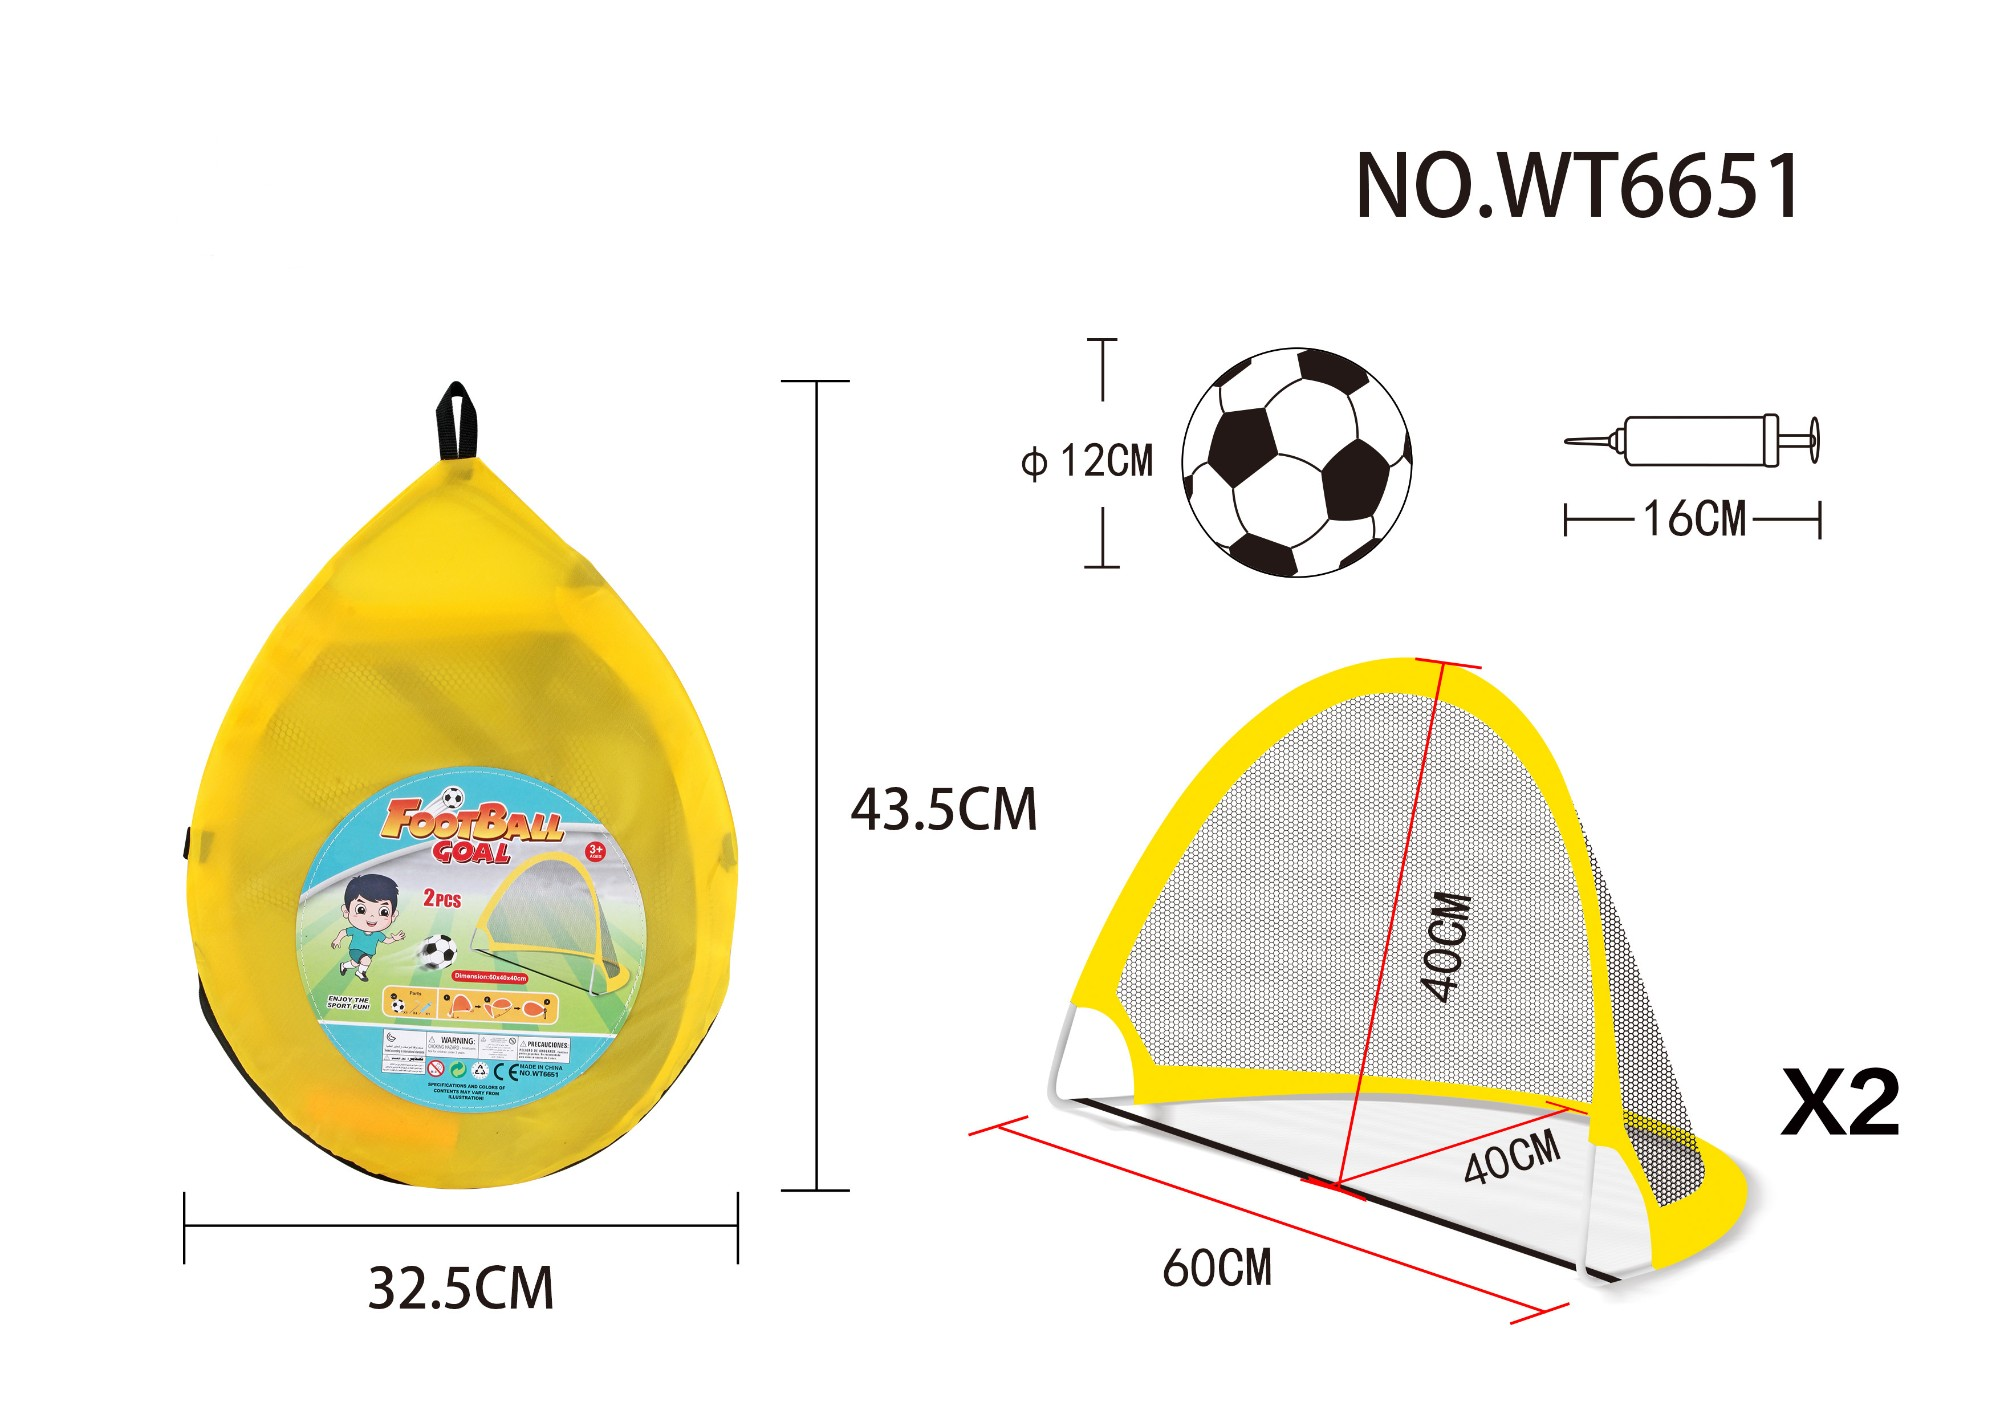 backpack folding football goal(small size) Manufacturers, backpack folding football goal(small size) Factory, Supply backpack folding football goal(small size)